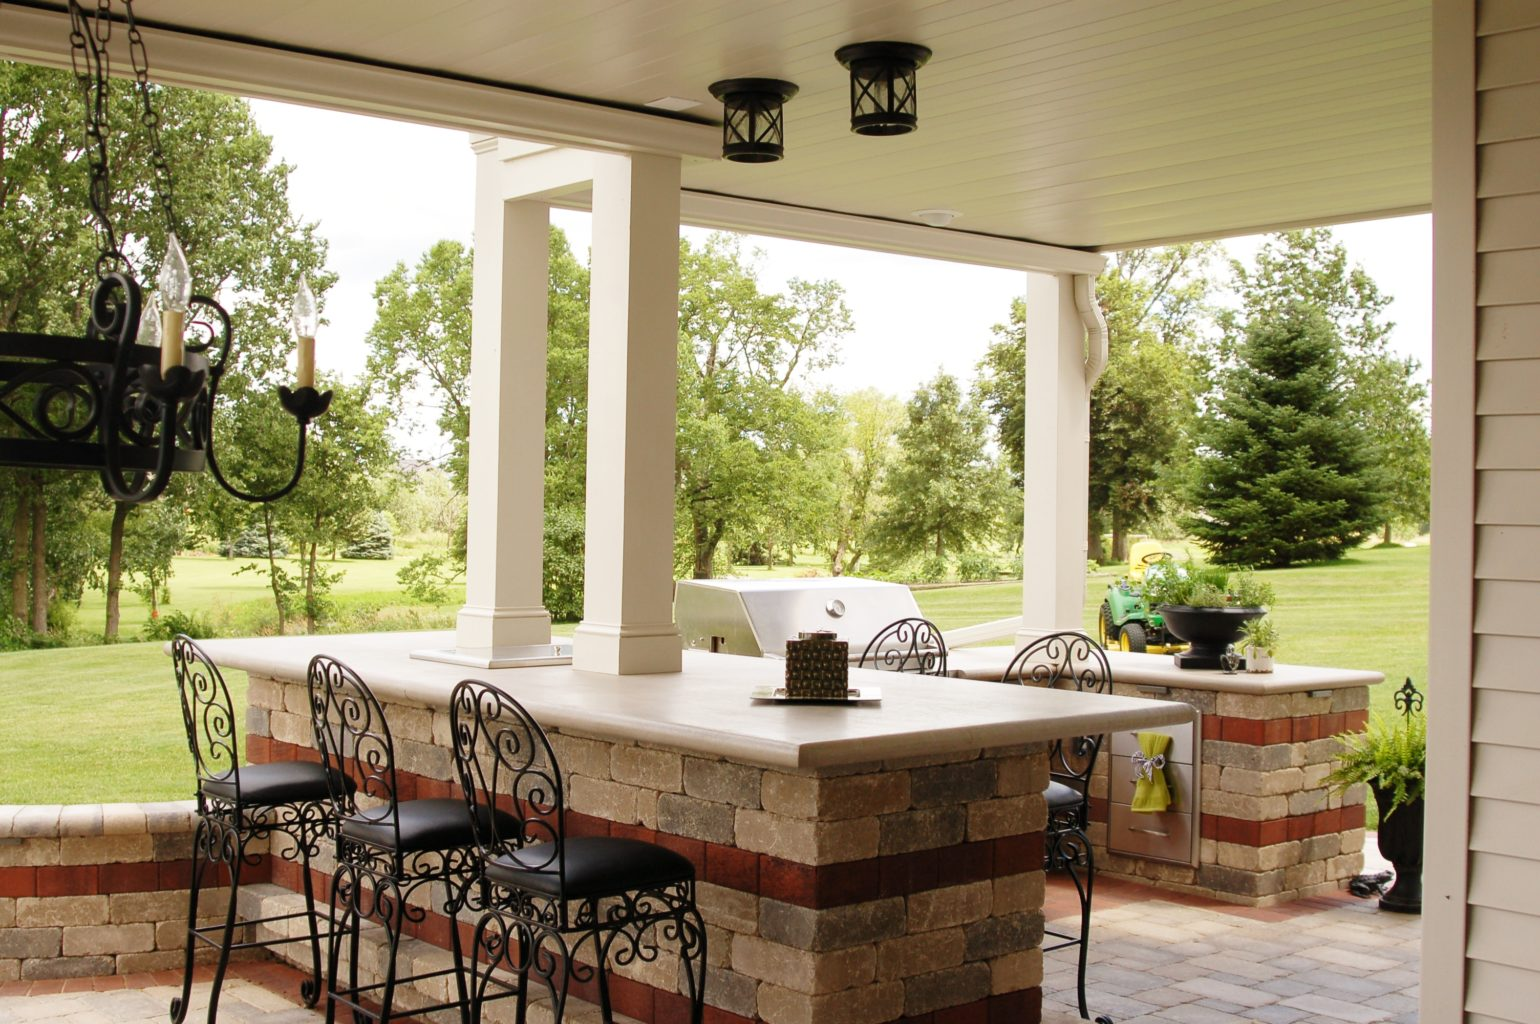 Underdeck grill area